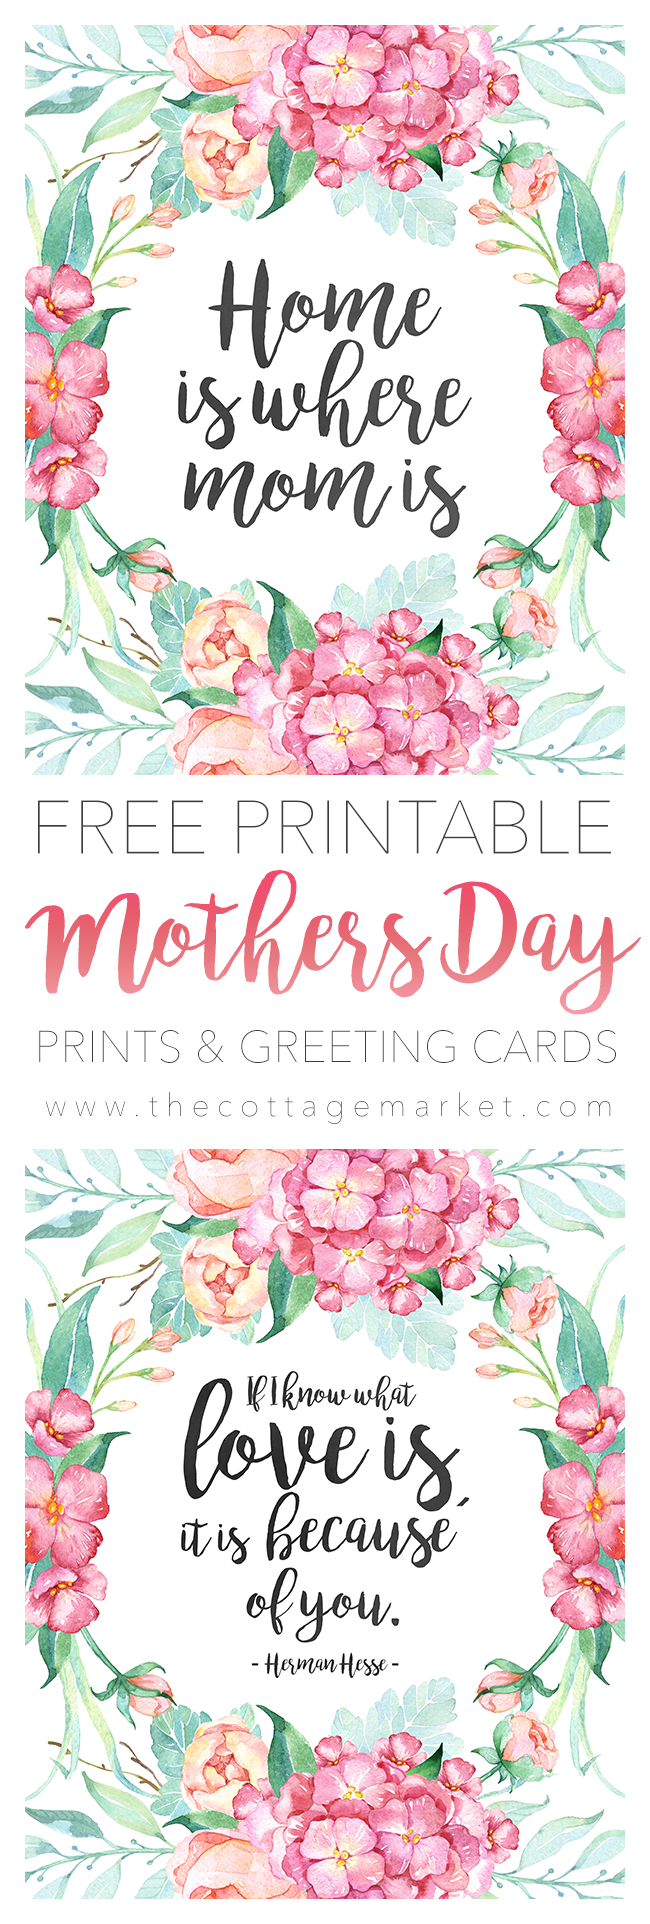 Free Printable Mothers Day Prints And Greeting Cards Printables